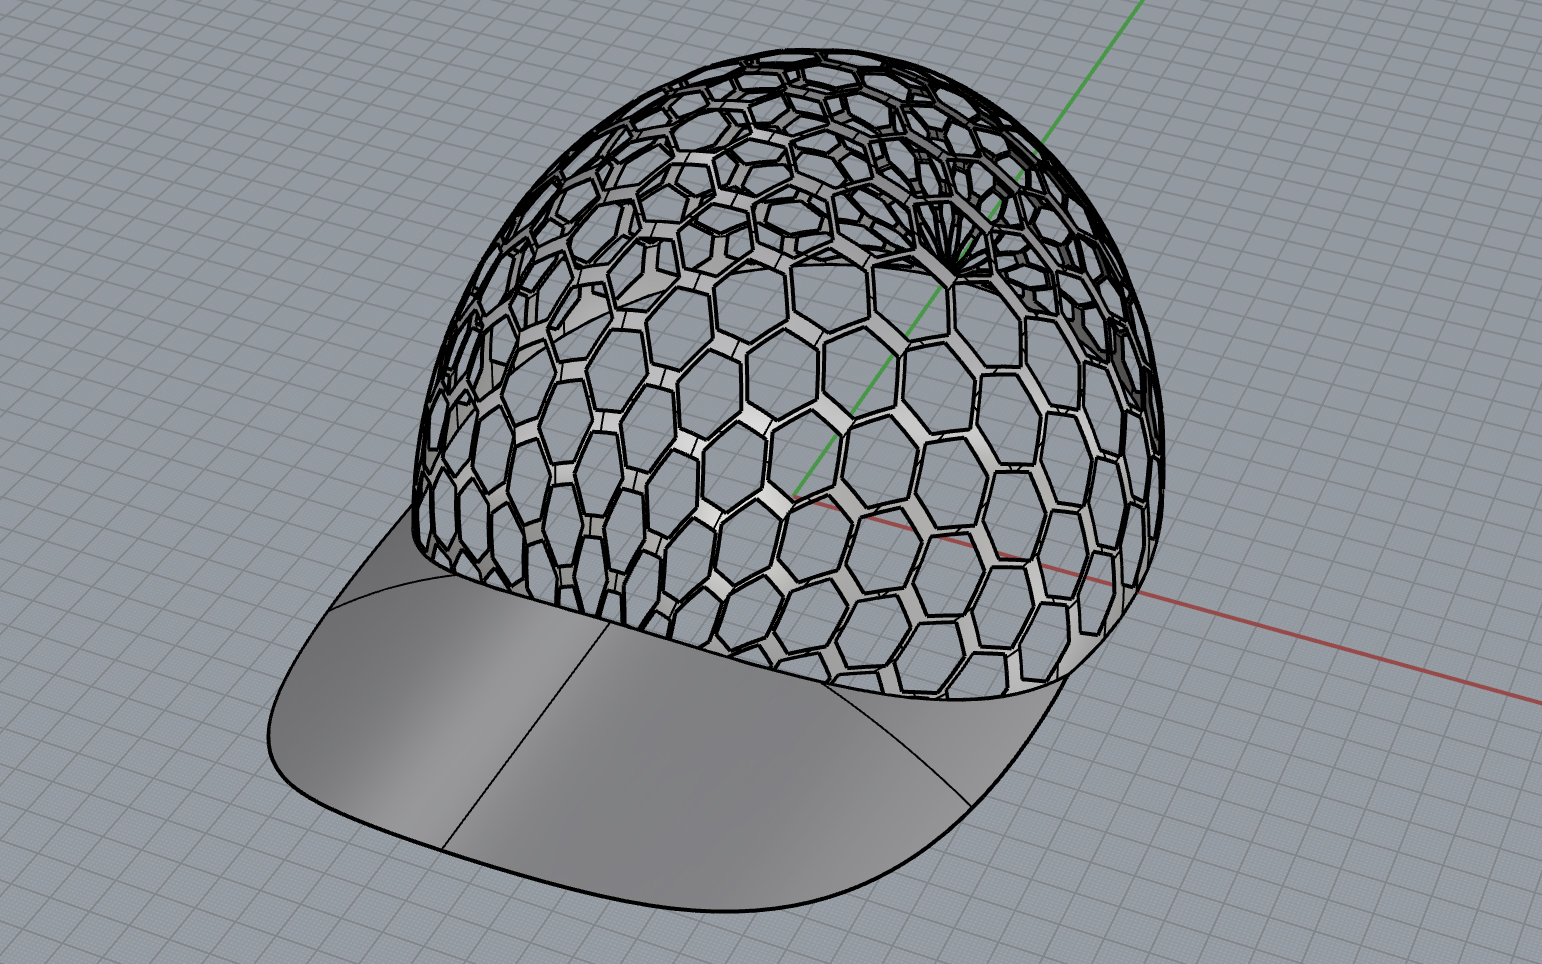 3D Printed Bee-hive Inspired Baseball Cap:  created in two separate parts (Bowl and Brim); designed to fit my unusually large head (Rhino).